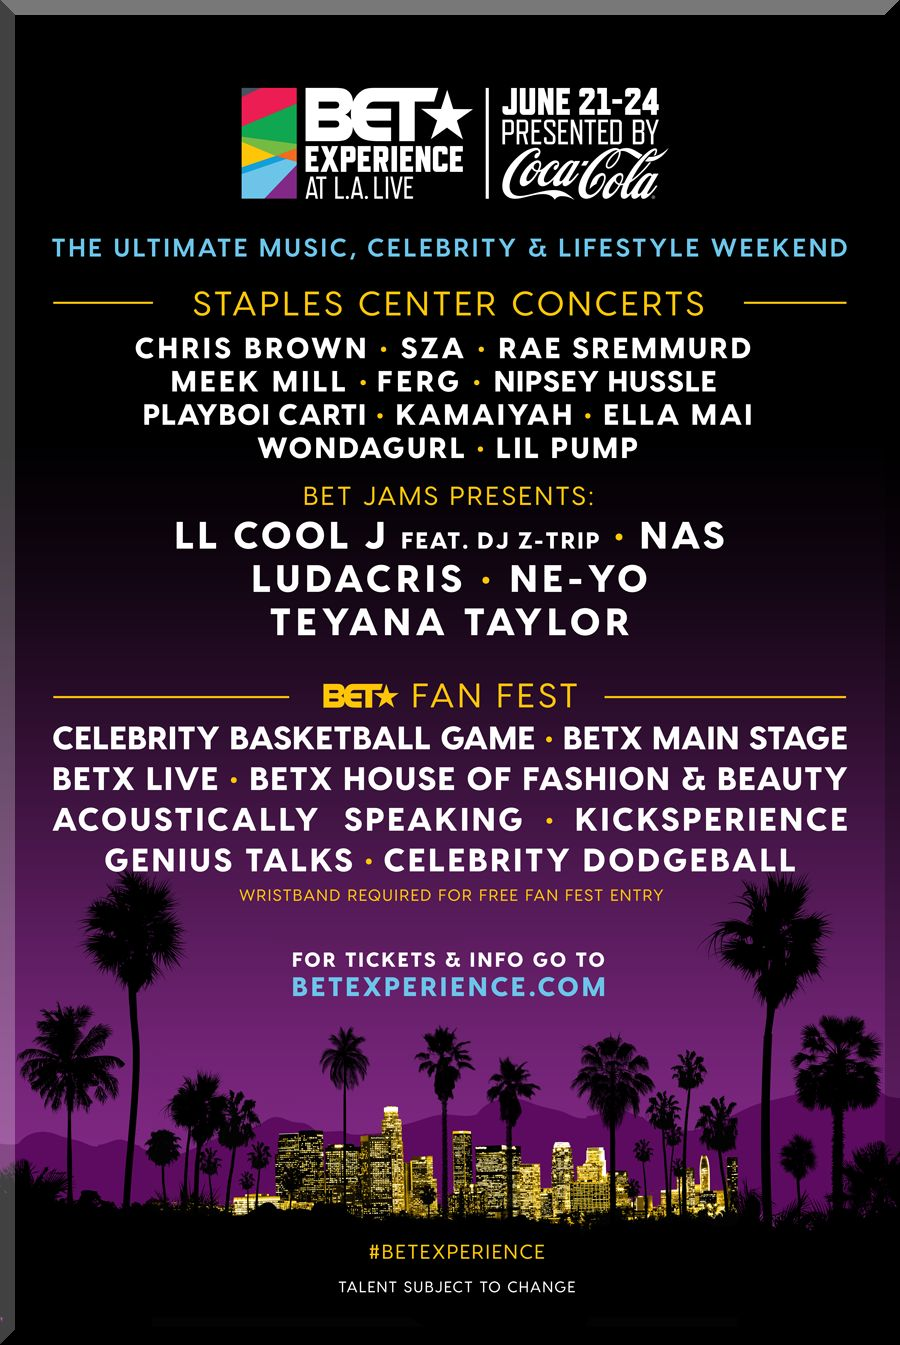 2018 BET AWARDS WEEKEND TICKETS JUNE 21-24 LA